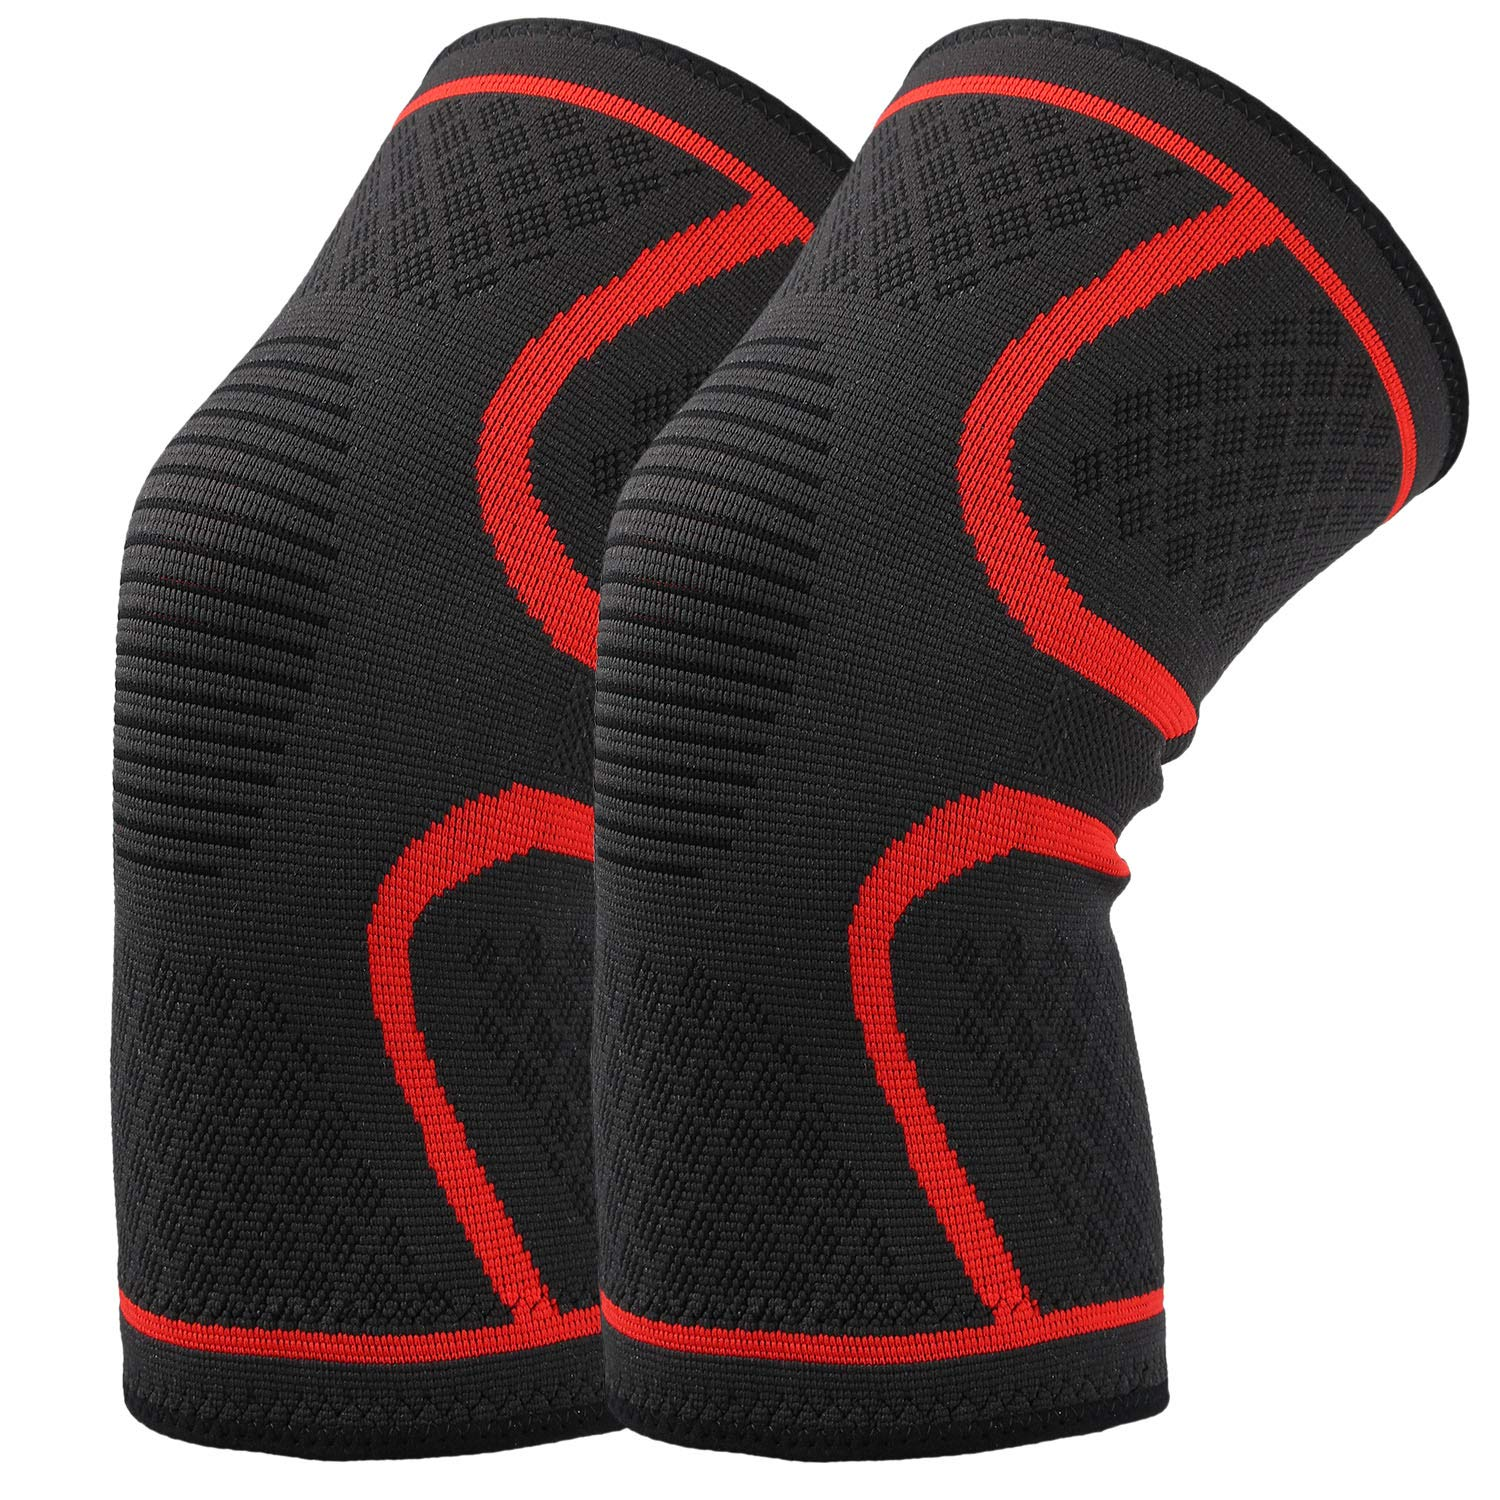 2cd83ec568 Hausbell elastic compression sleeves support all kinds of sports and it It  is an ideal gifts for runners, joggers, or athletes. It could prevent and  reduce ...